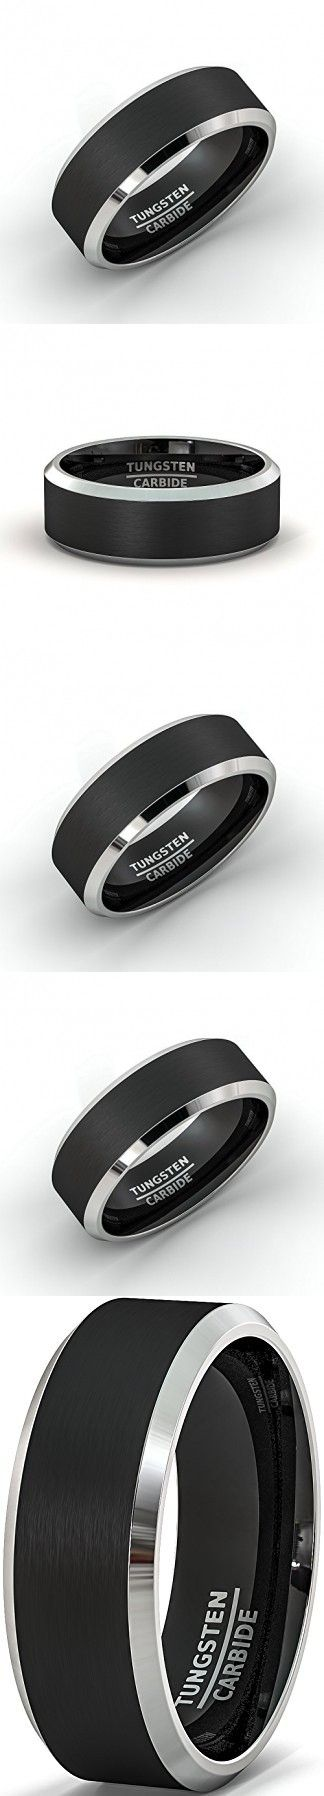 Mens Wedding Band 8mm Black Tungsten Rings Brushed Matte Finish Two Tone Beveled Edge Comfort Fit (10.5)